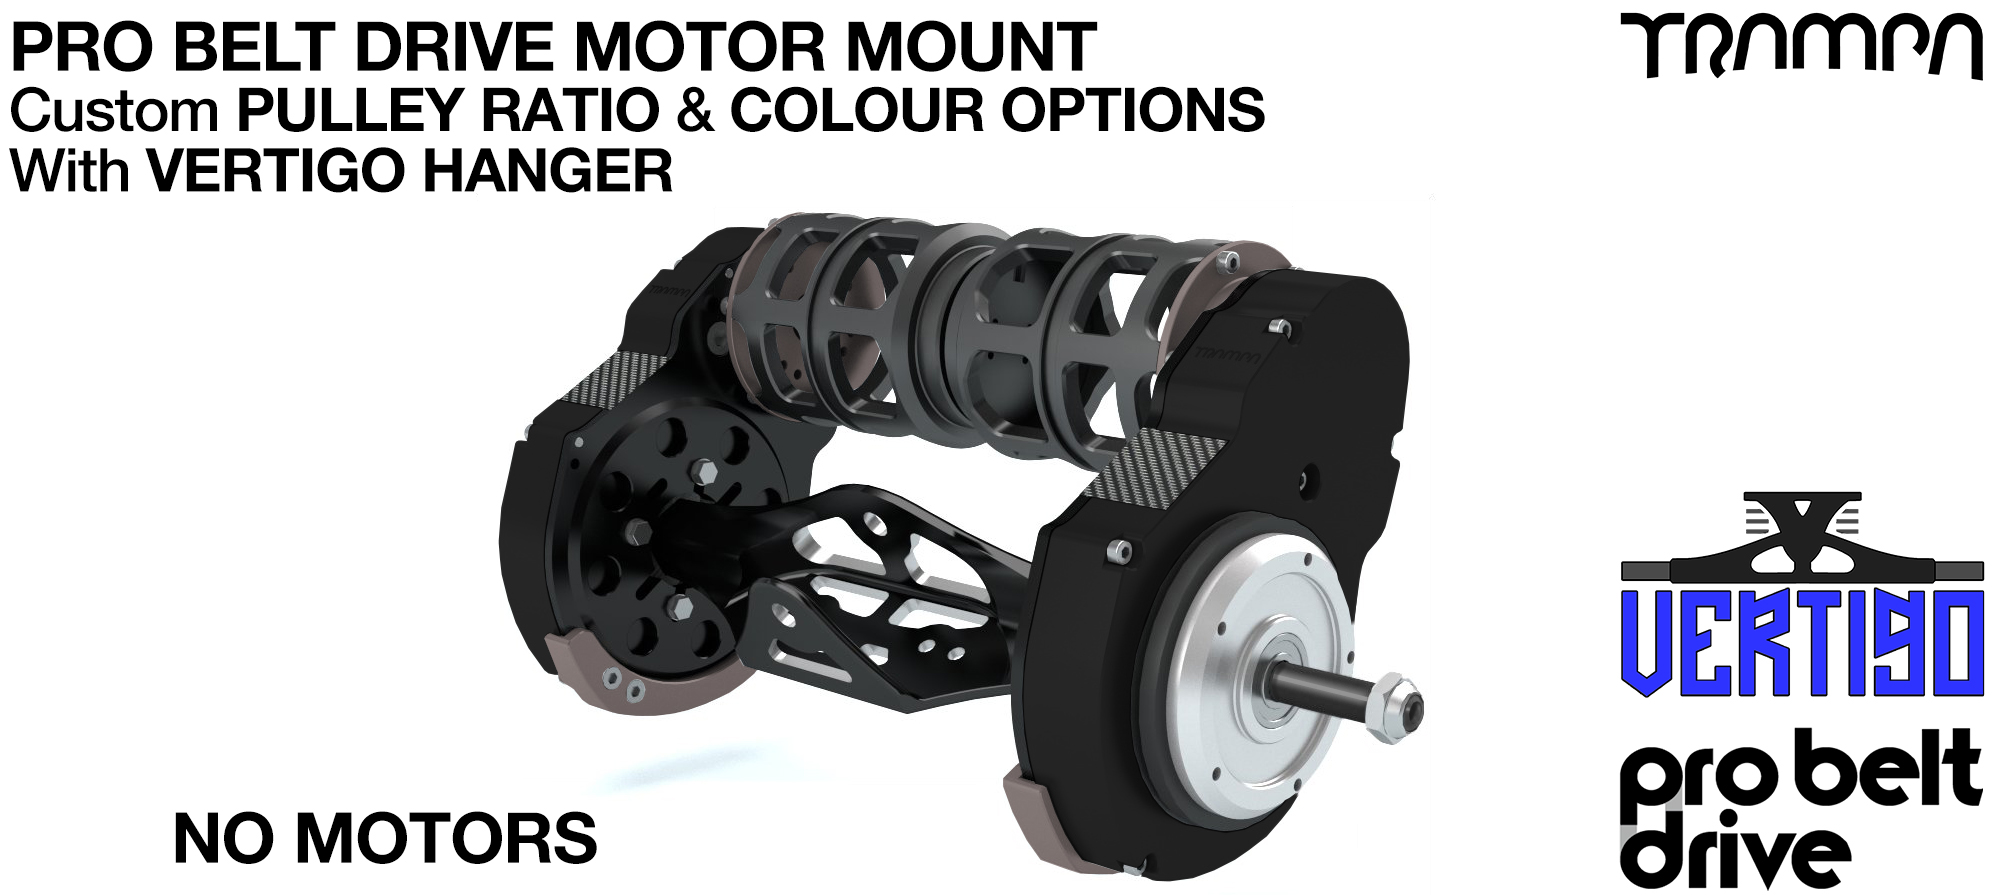 Mountainboard PRO Belt Drive TWIN Motor Mounts, Motors & Precision VERTIGO Hanger